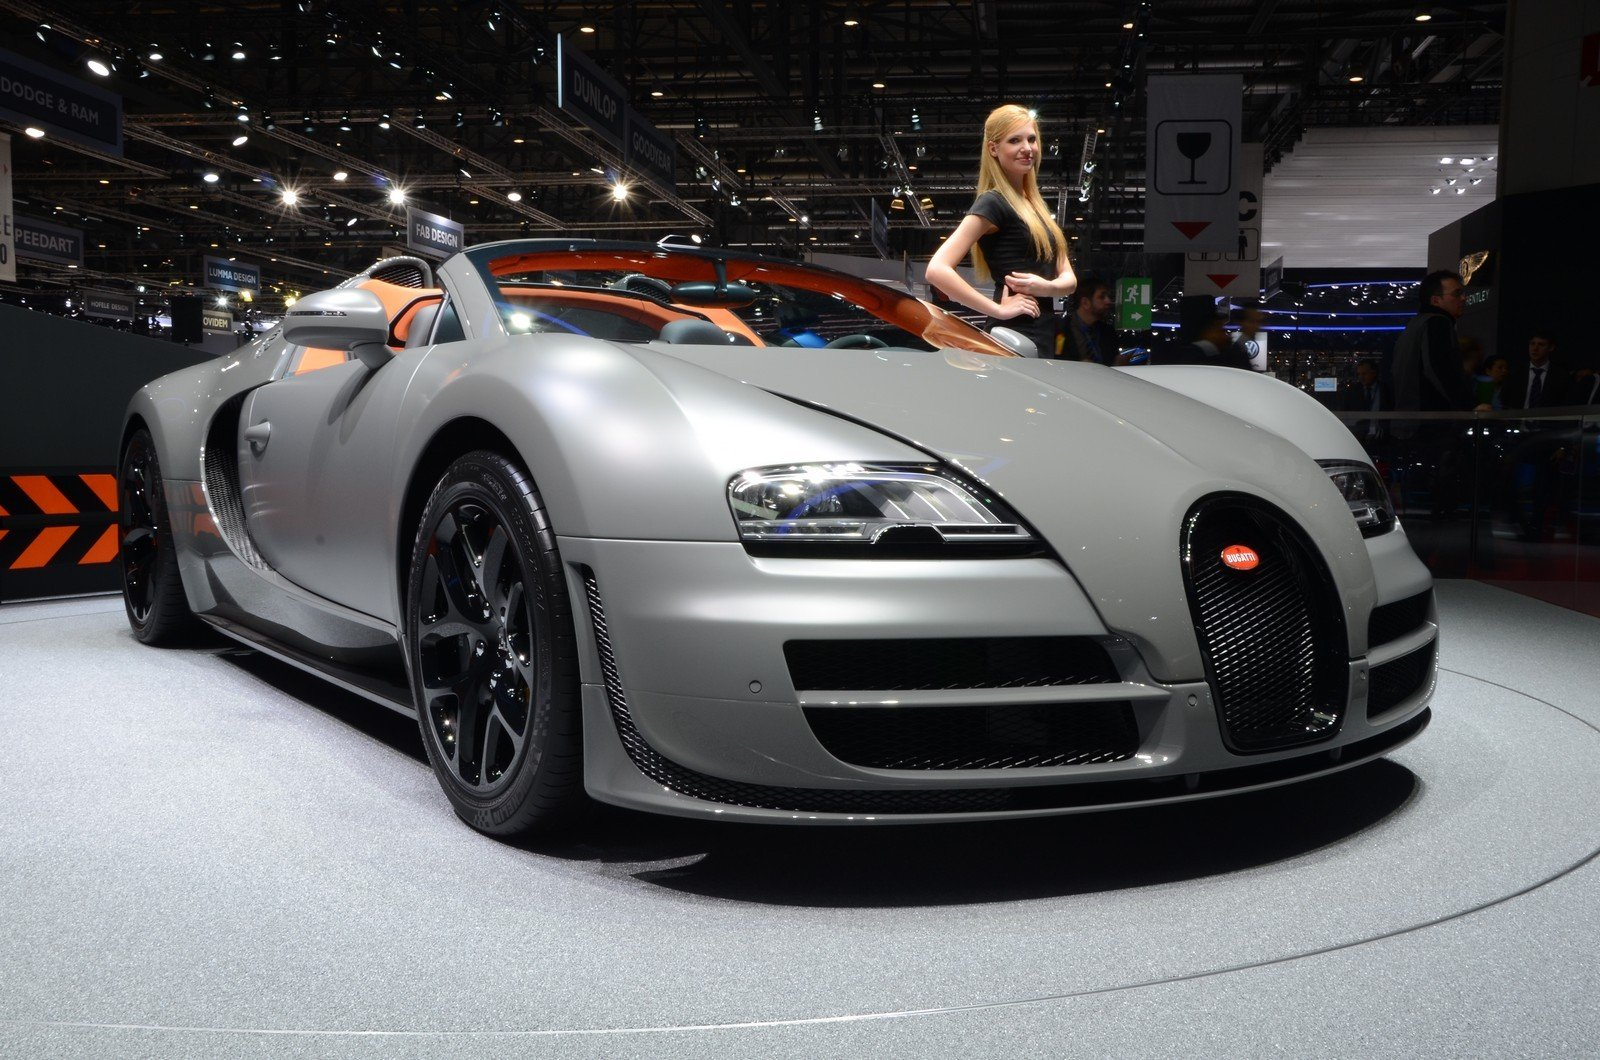 2012 bugatti veyron grand sport vitesse picture 441341 car review top speed. Black Bedroom Furniture Sets. Home Design Ideas